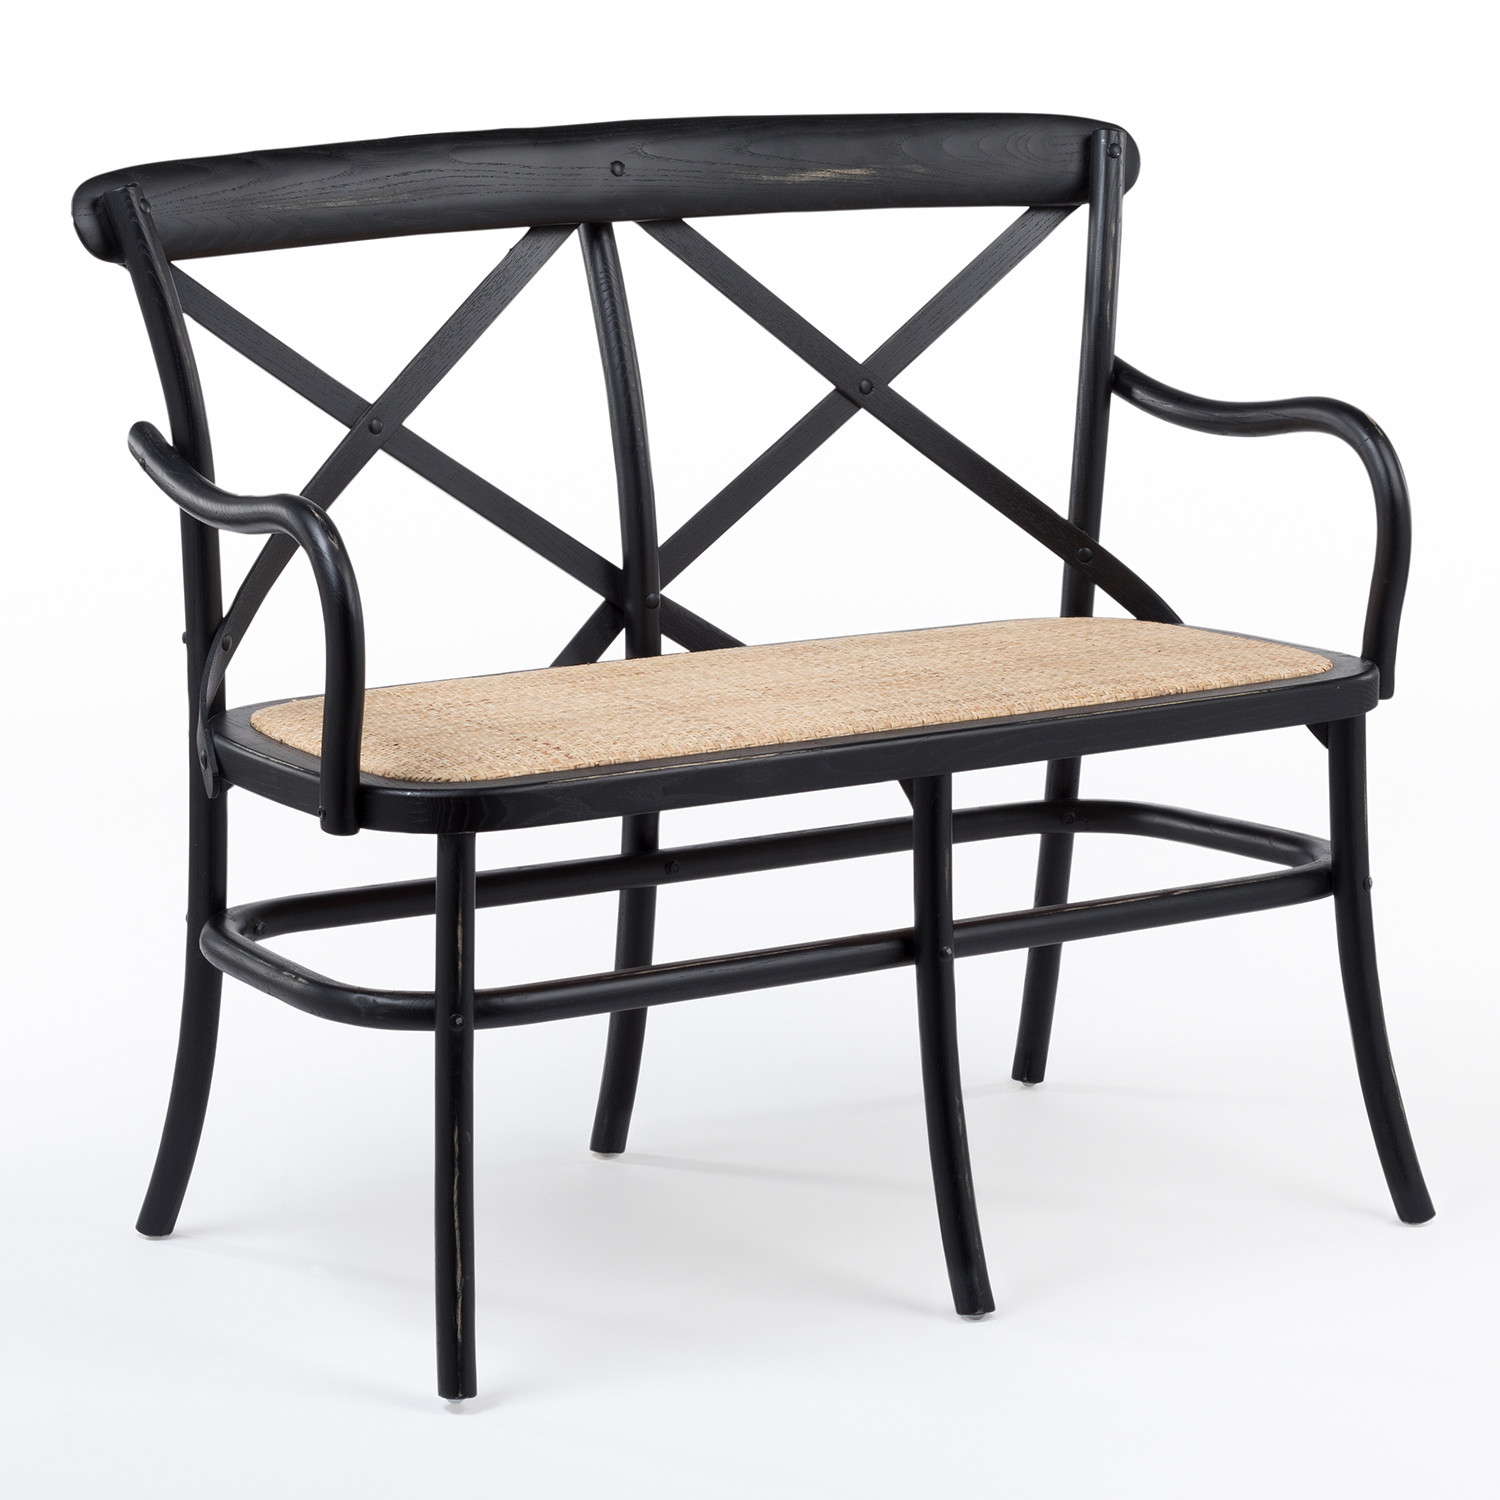 Otax Vintage Bench, gallery image 1